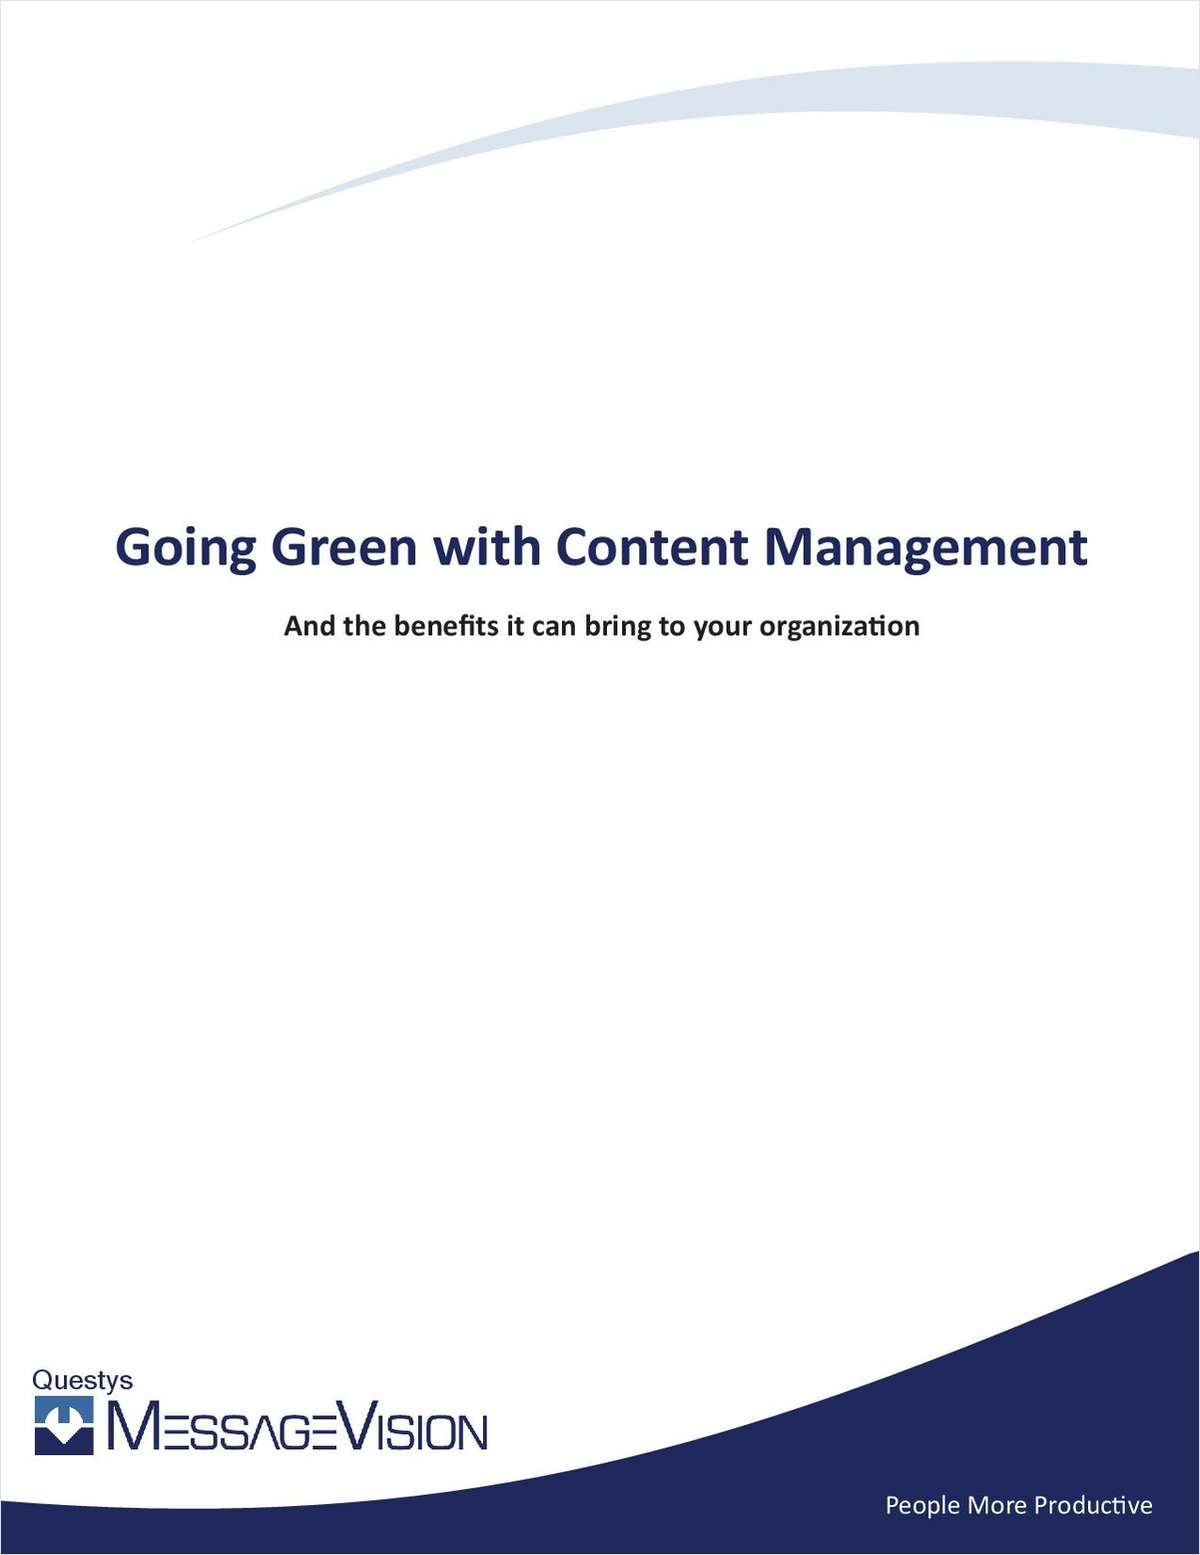 Going Green With Content Management